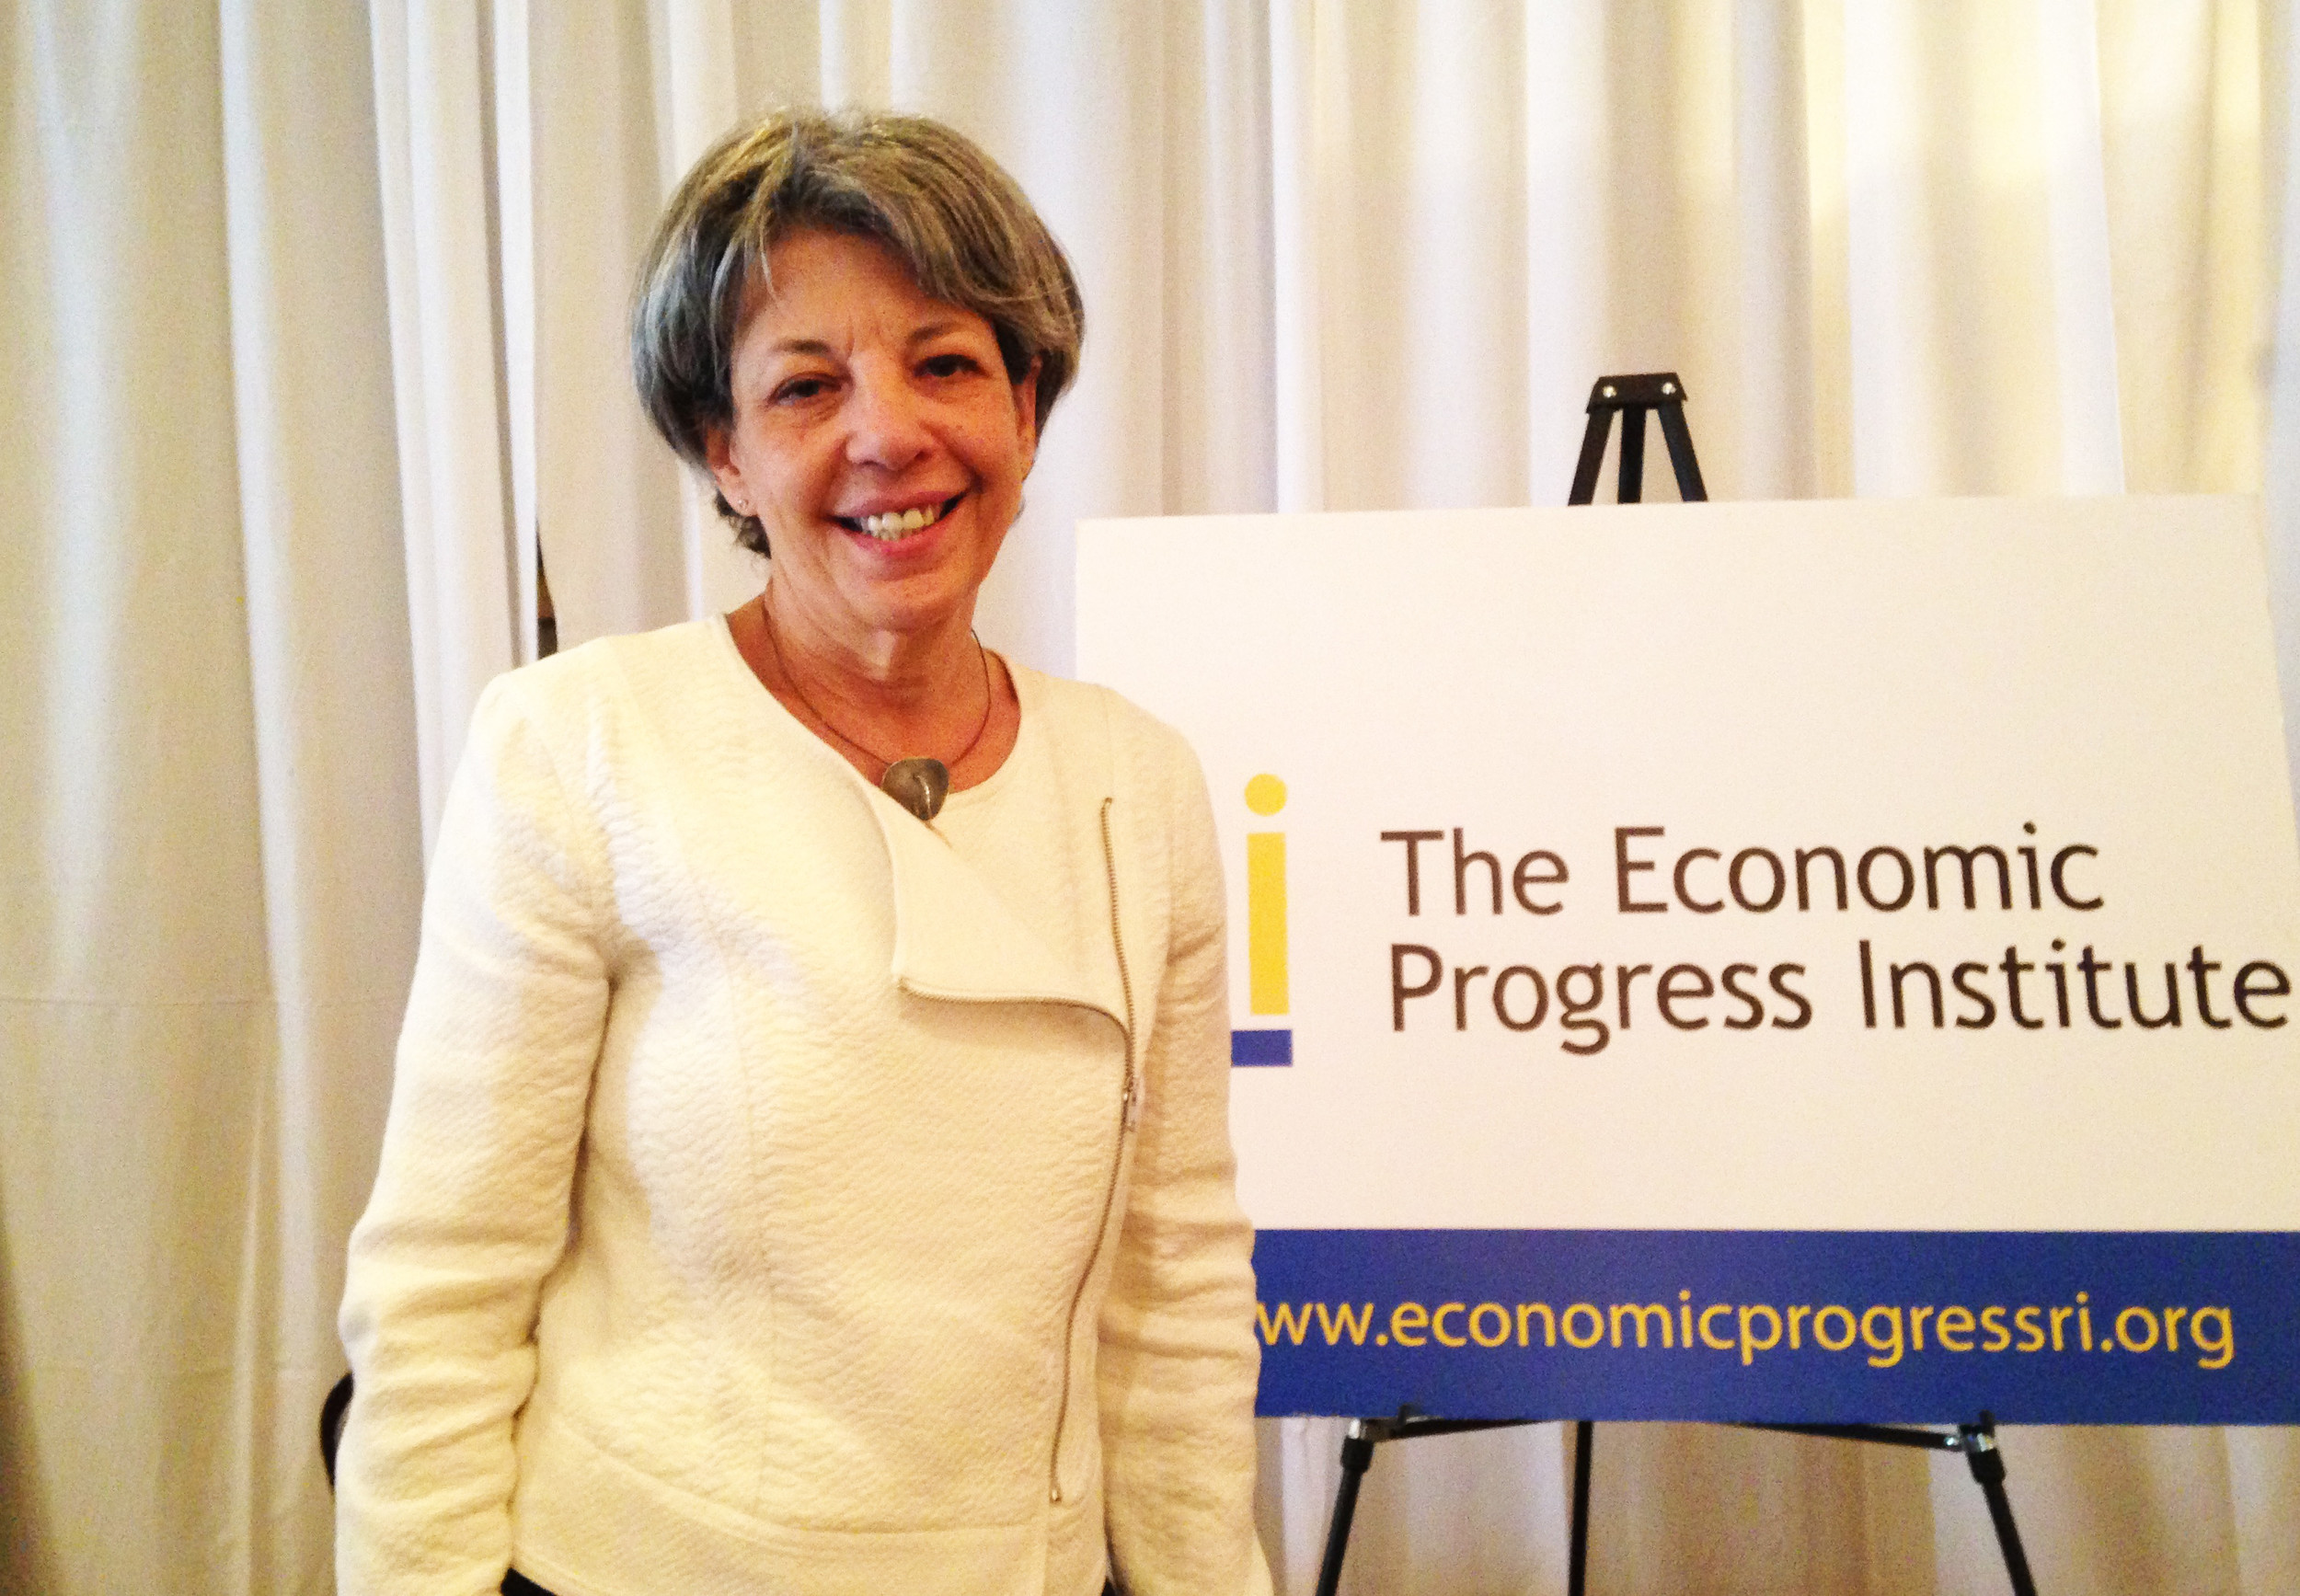 Cindy Mann, the former national Medicaid director, was the keynote speaker at The Economic Progress Institute's 7th annual policy and budget conference on May 8.